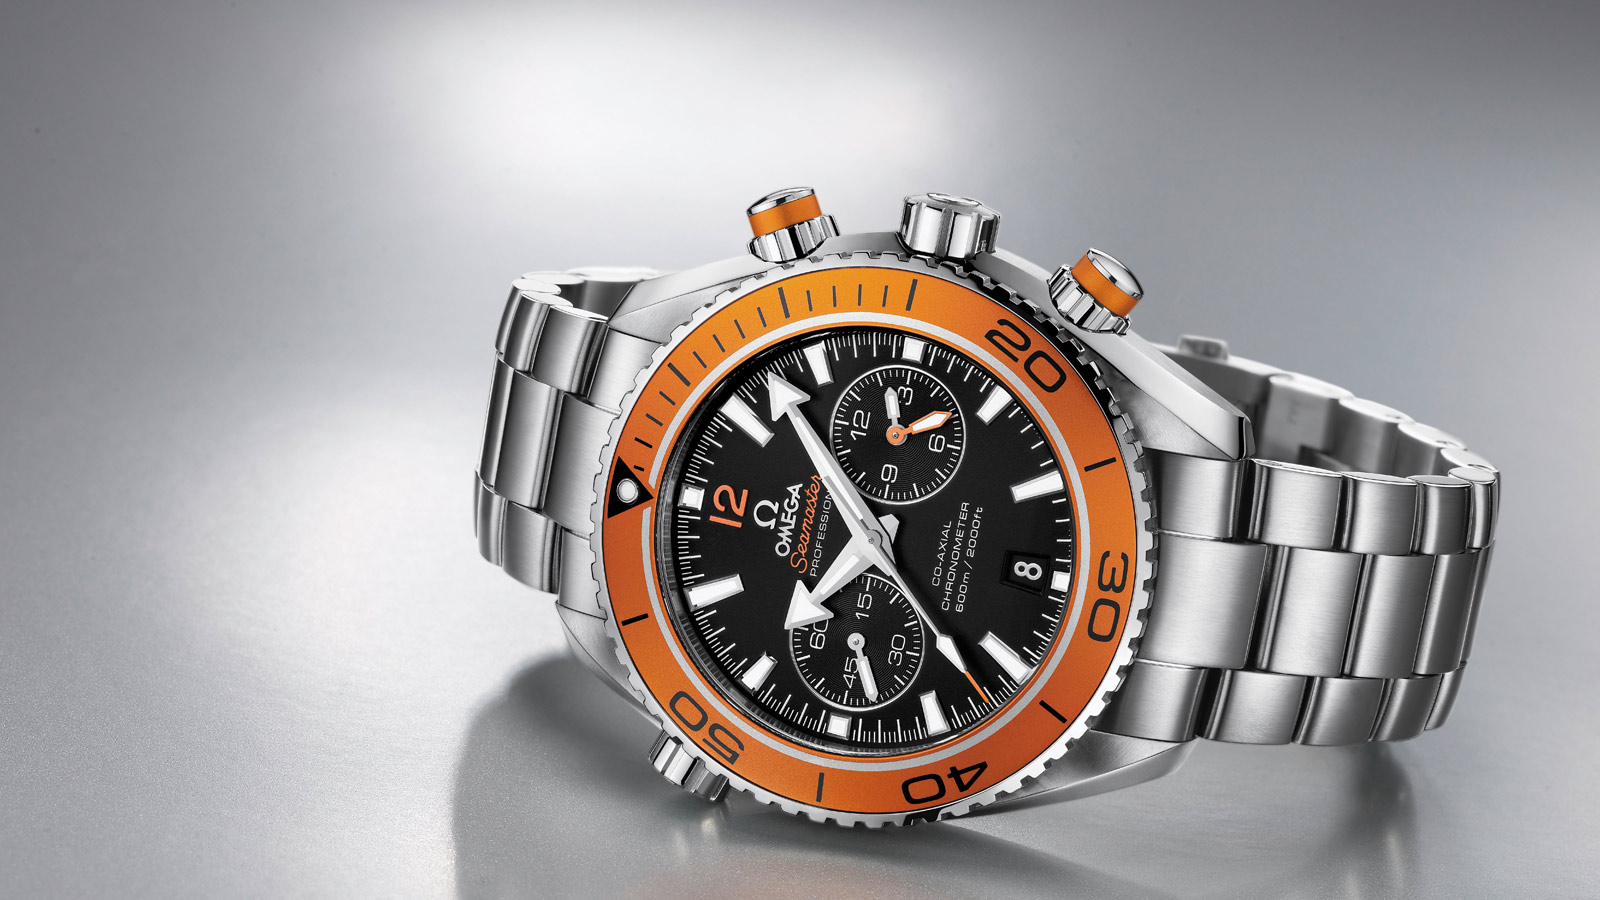 Seamaster Planet Ocean 600M Planet Ocean 600M Omega Co‑Axial Chronograph 45,5 mm - 232.30.46.51.01.002 - Просмотреть 1